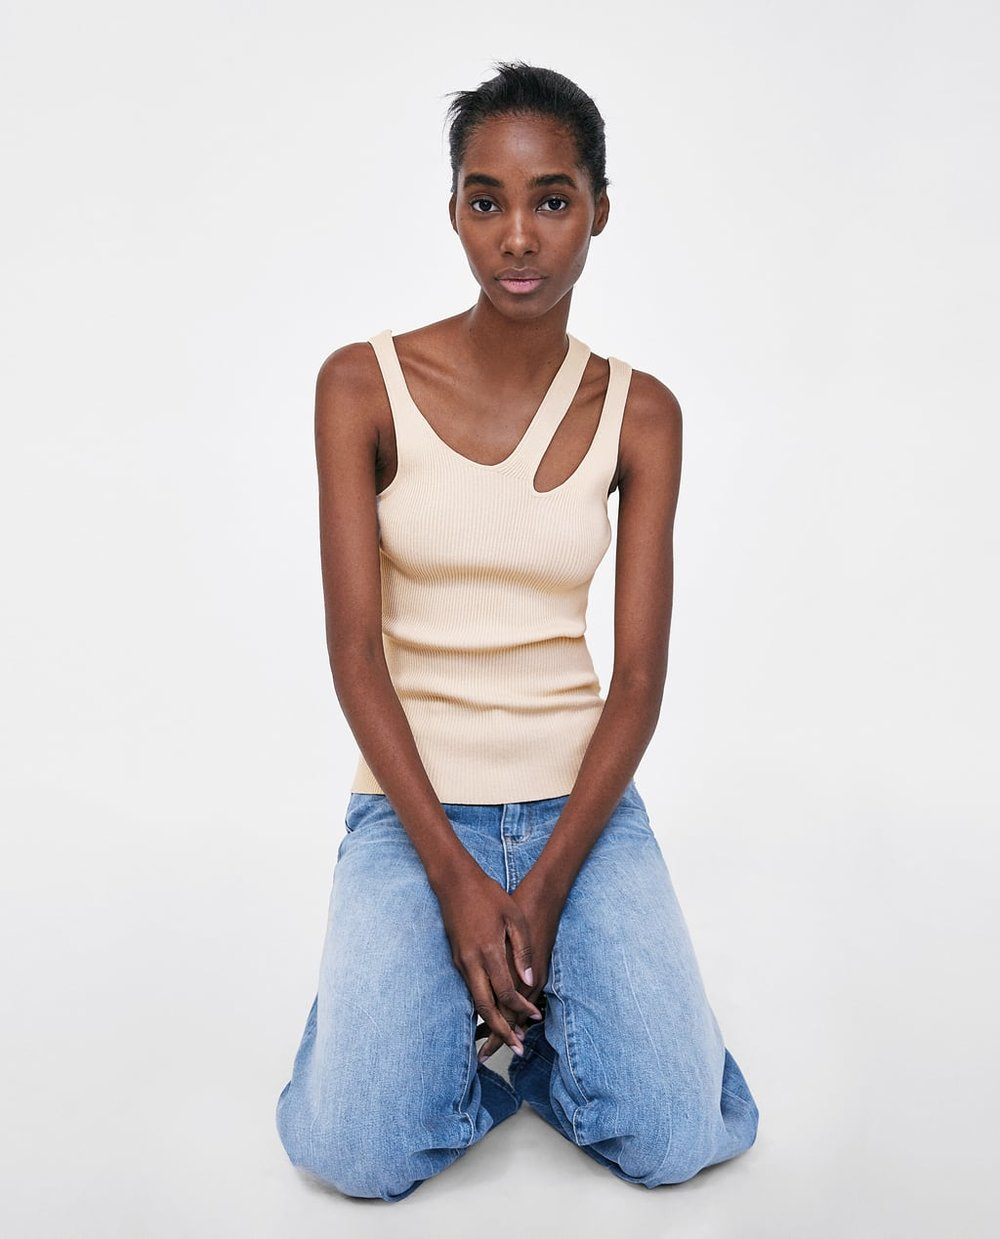 https://www.zara.com/ca/en/minimal-collection-top-with-cut-out-detail-p00014010.html?v1=5927070&v2=968893